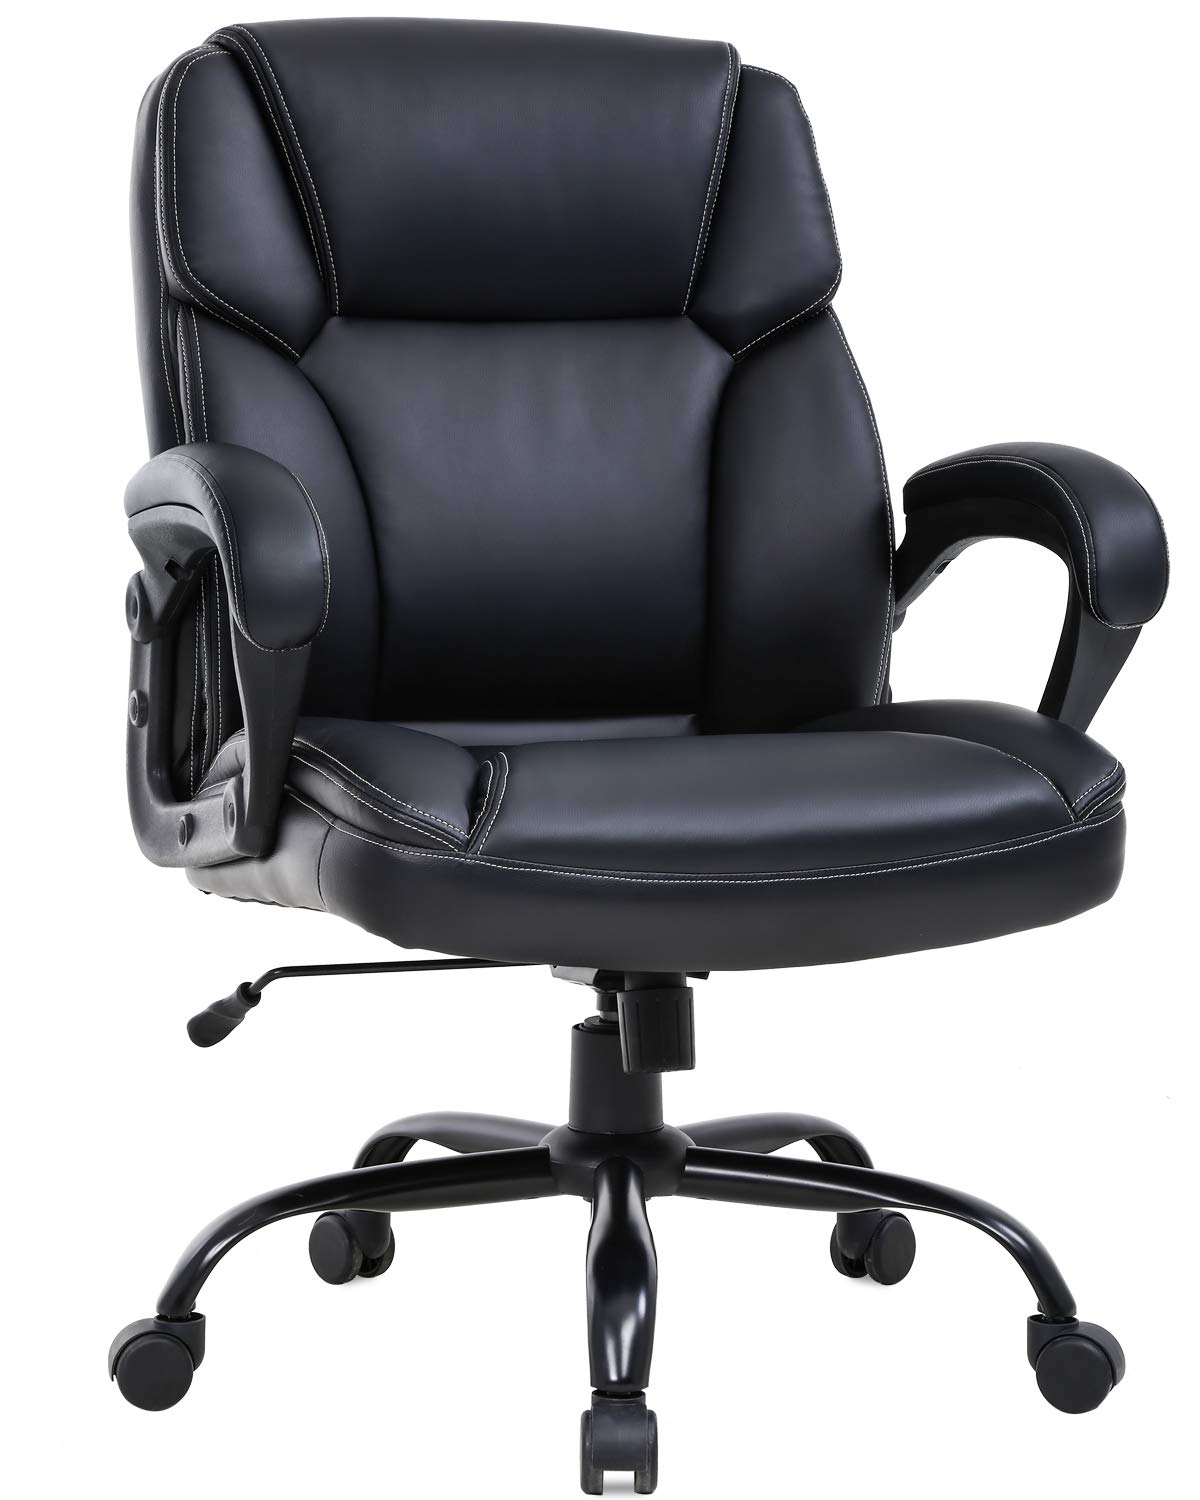 Bestoffice Big And Tall Office Chairs - Big And Tall Office Chair 400lbs Capacity